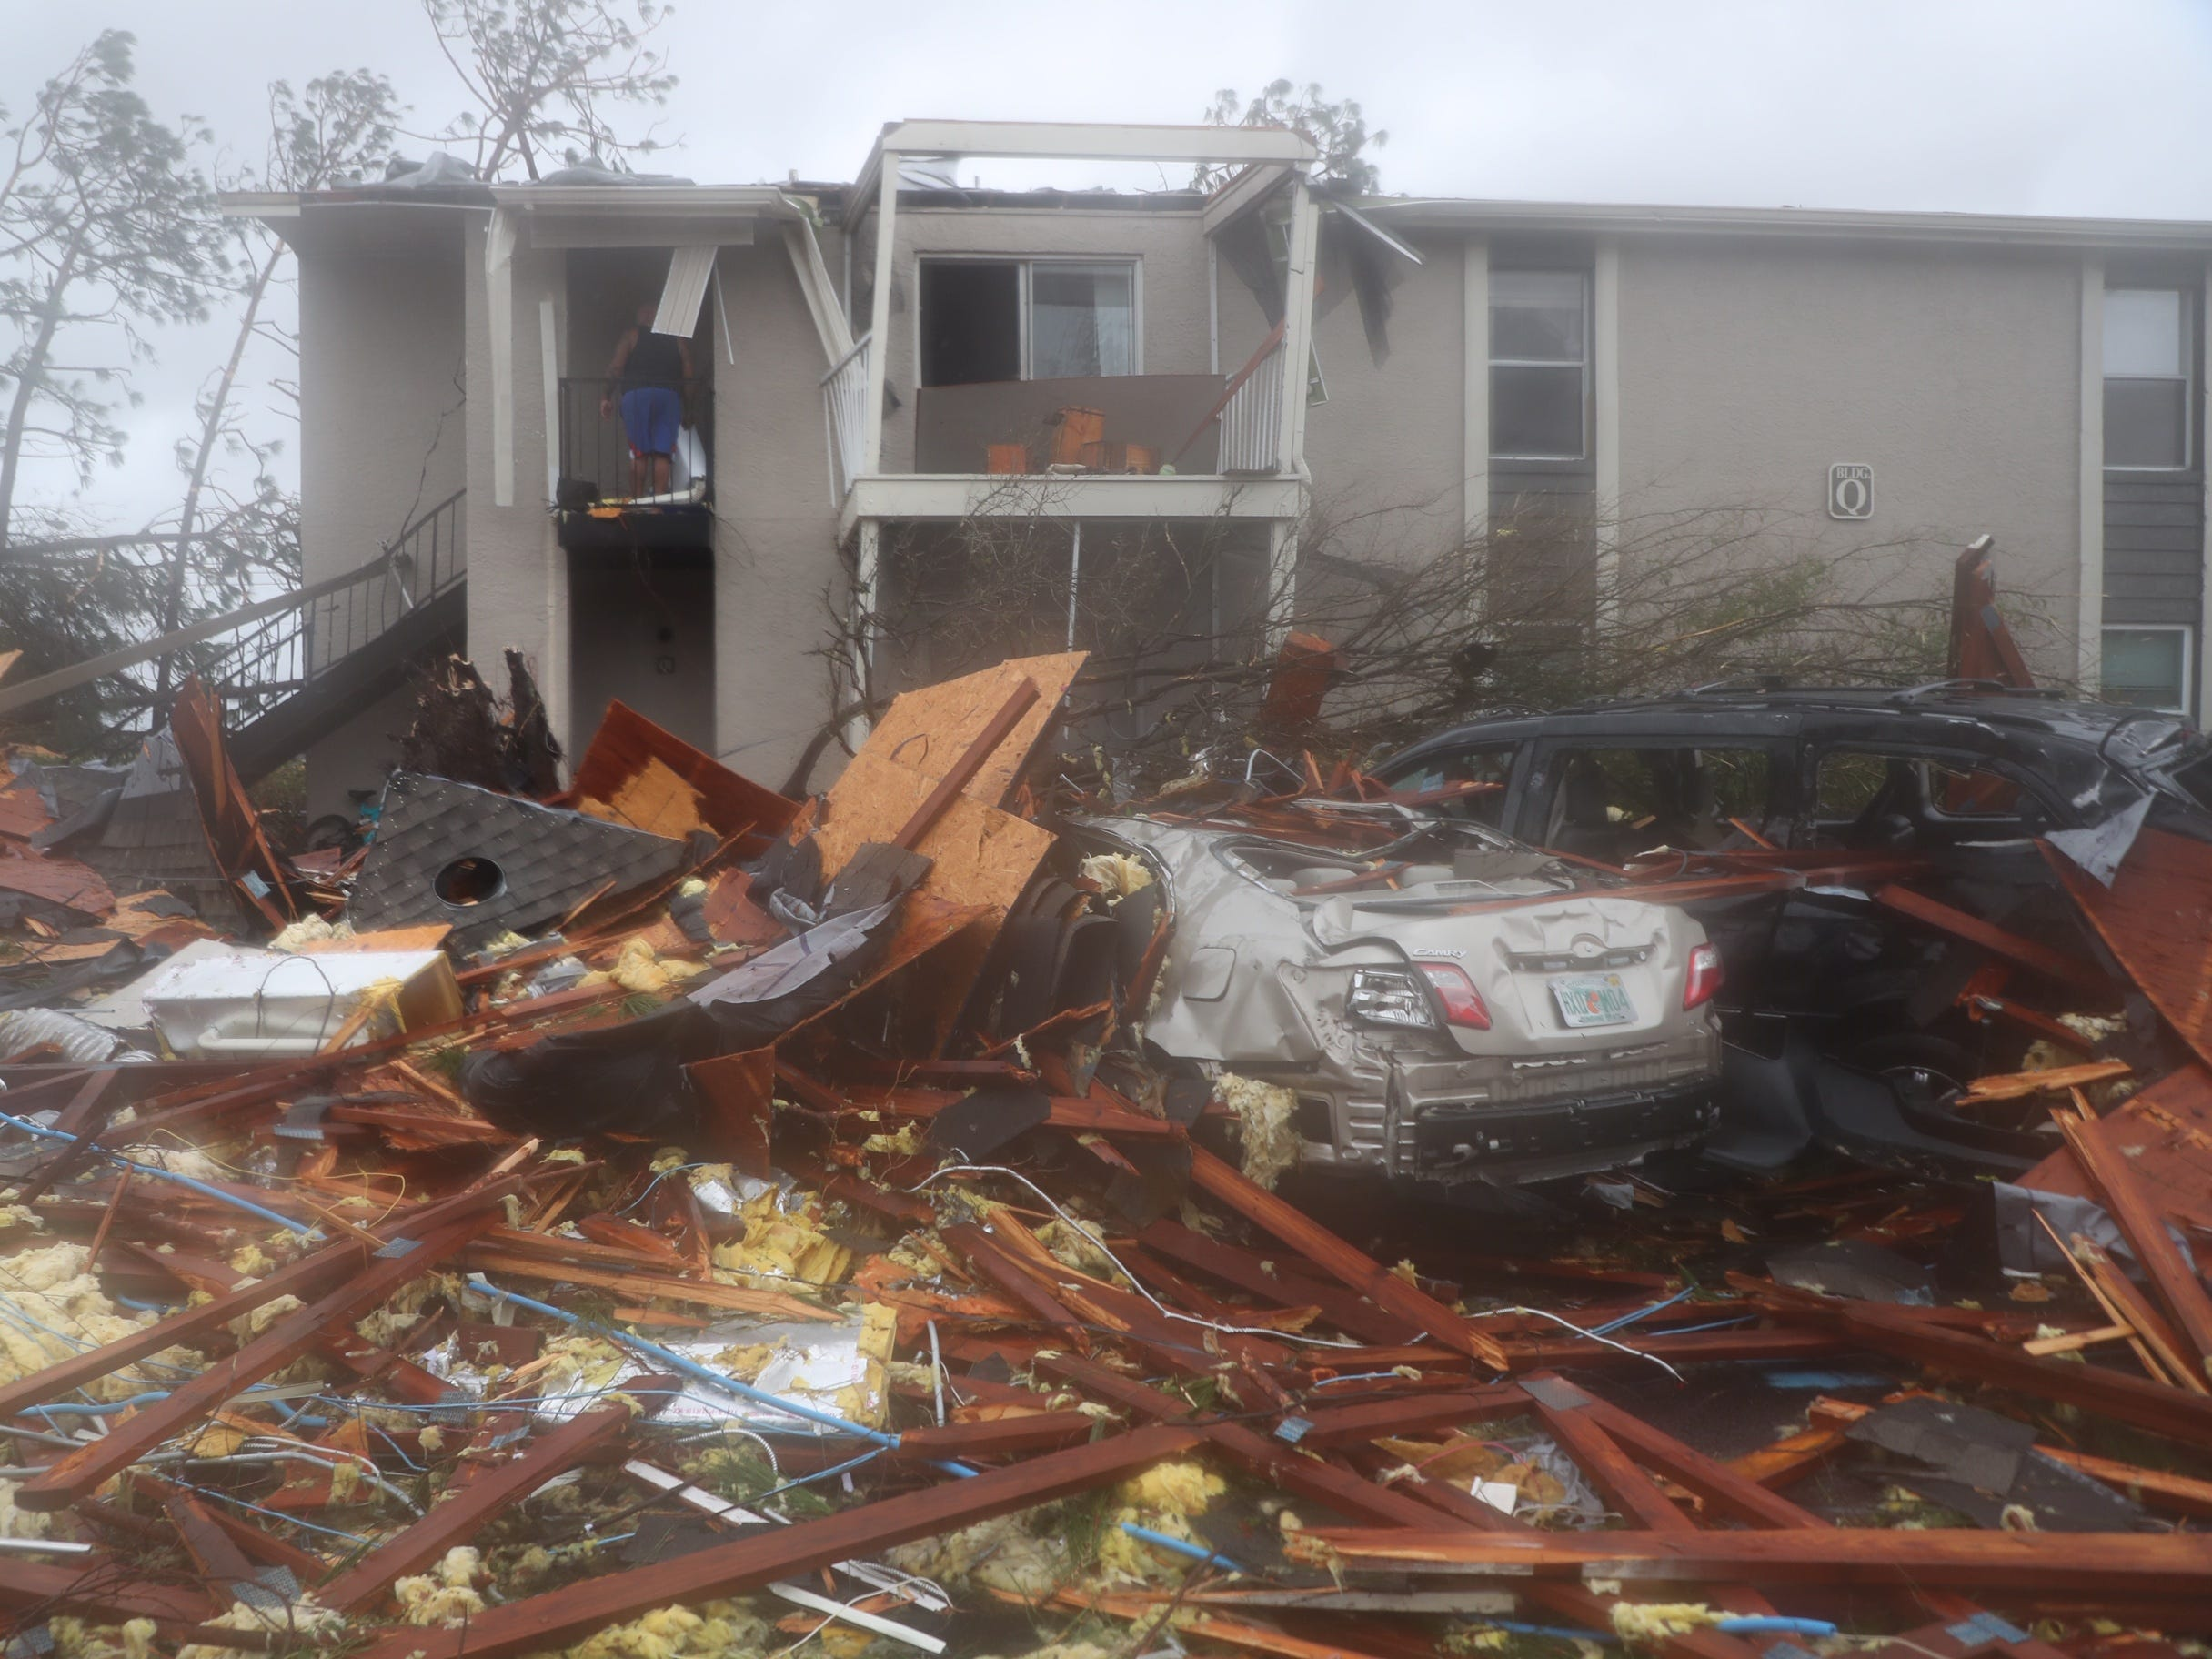 Oct 10, 2018; Panama City, FL, USA; Heavy damage caused by Hurricane Michael in Panama City, Fla. Mandatory credit: Andrew West/The News via USA TODAY NETWORK